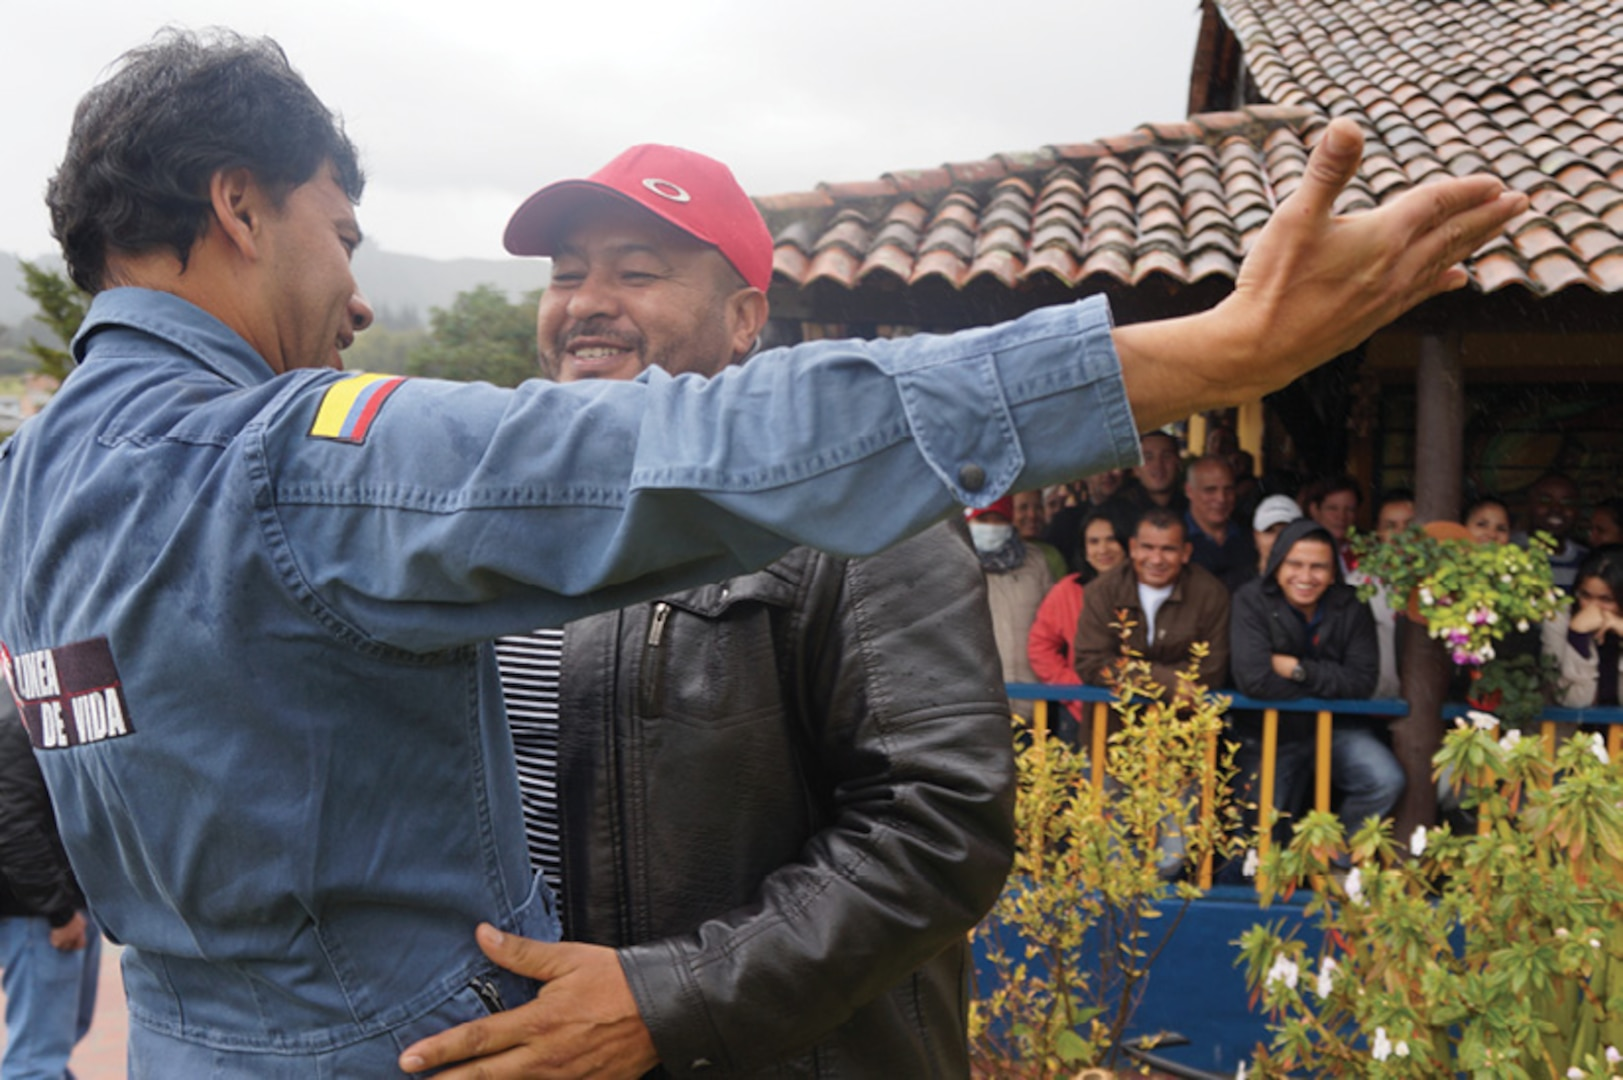 Over 100 participants receive training from Colombia's Agency for Reintegration, a government